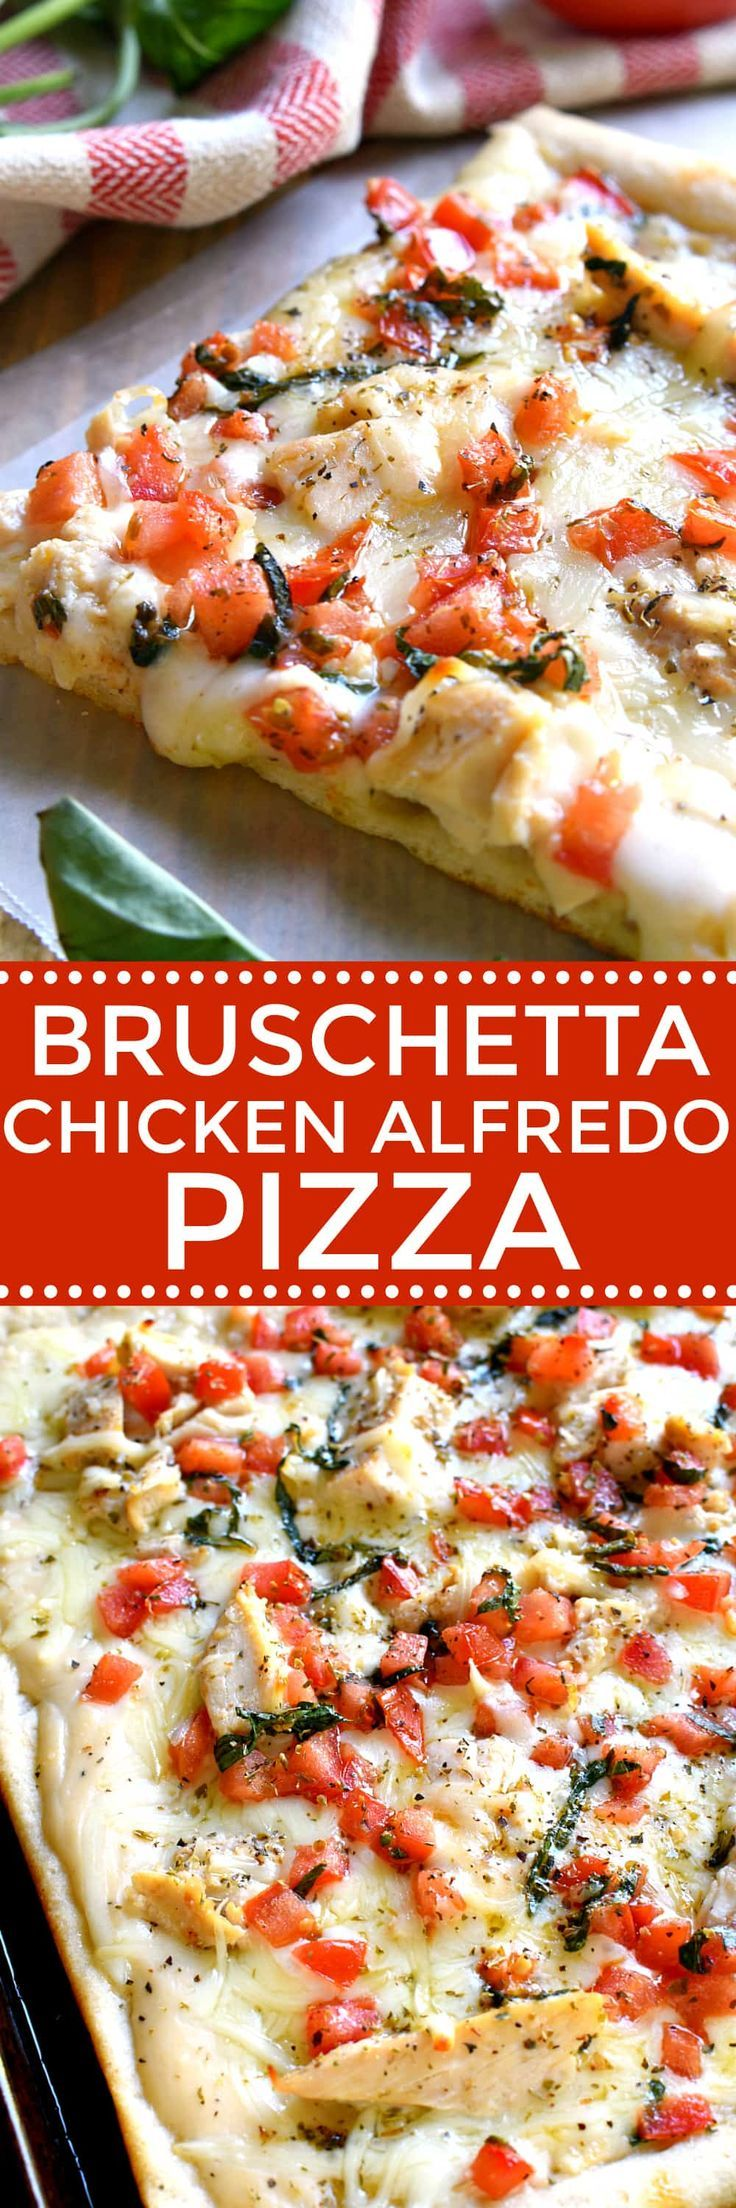 This Bruschetta Chicken Alfredo Pizza is a little taste of Italy, right in your own kitchen! Packed with delicious flavor and ready in under 30 minutes, this pizza is perfect for family night, date night, or a fun night with friends! #sponsored @classicopastasauce